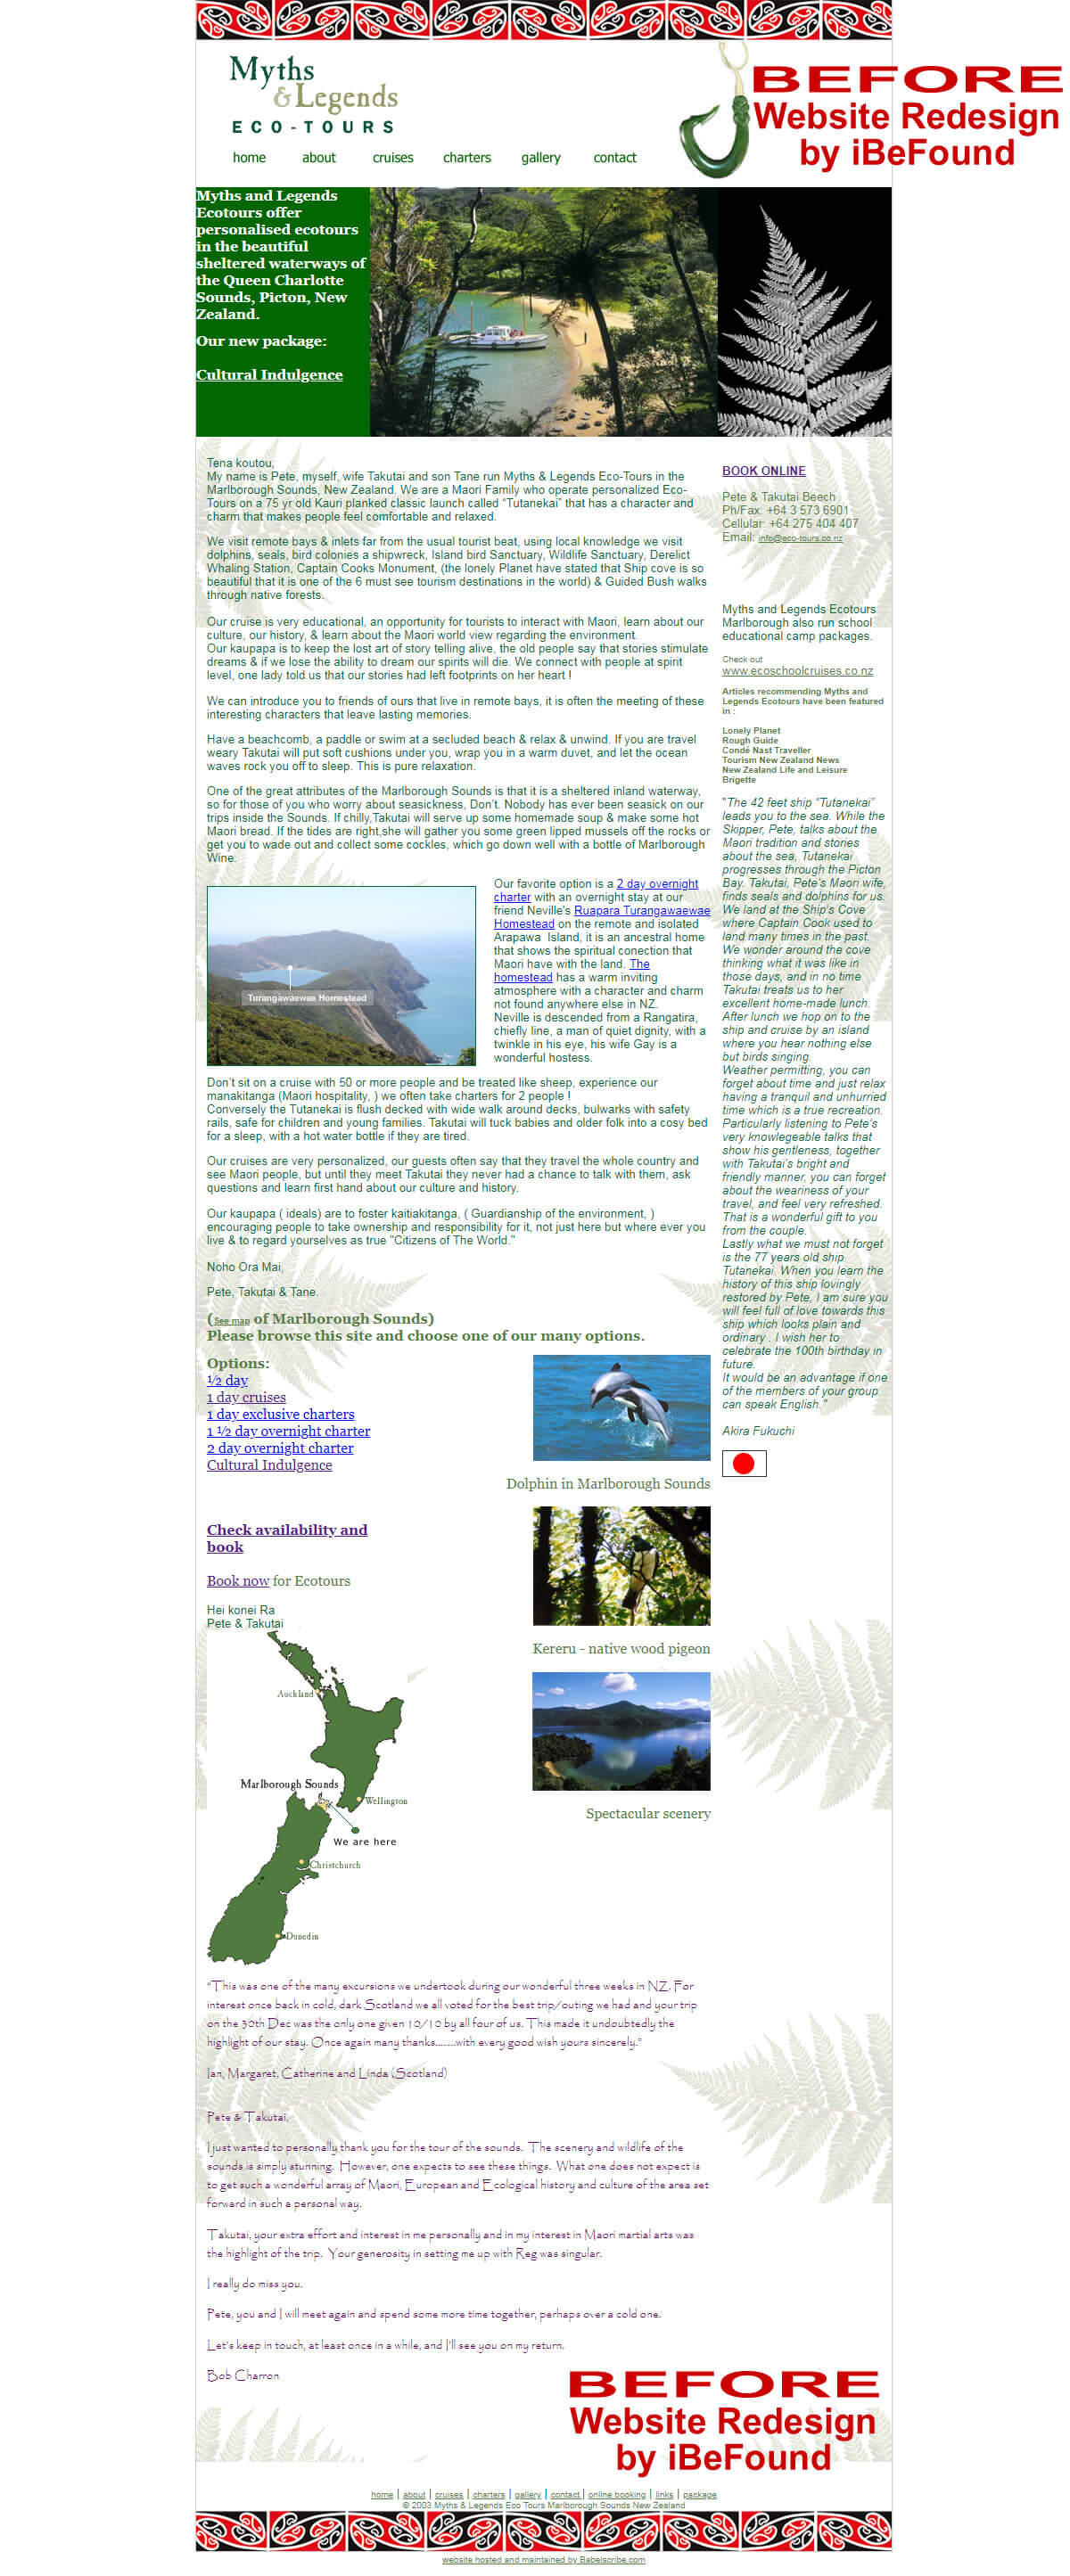 Homepage Of Maori Eco Tours Before Website Redesign By IBeFound Digital Marketing Division